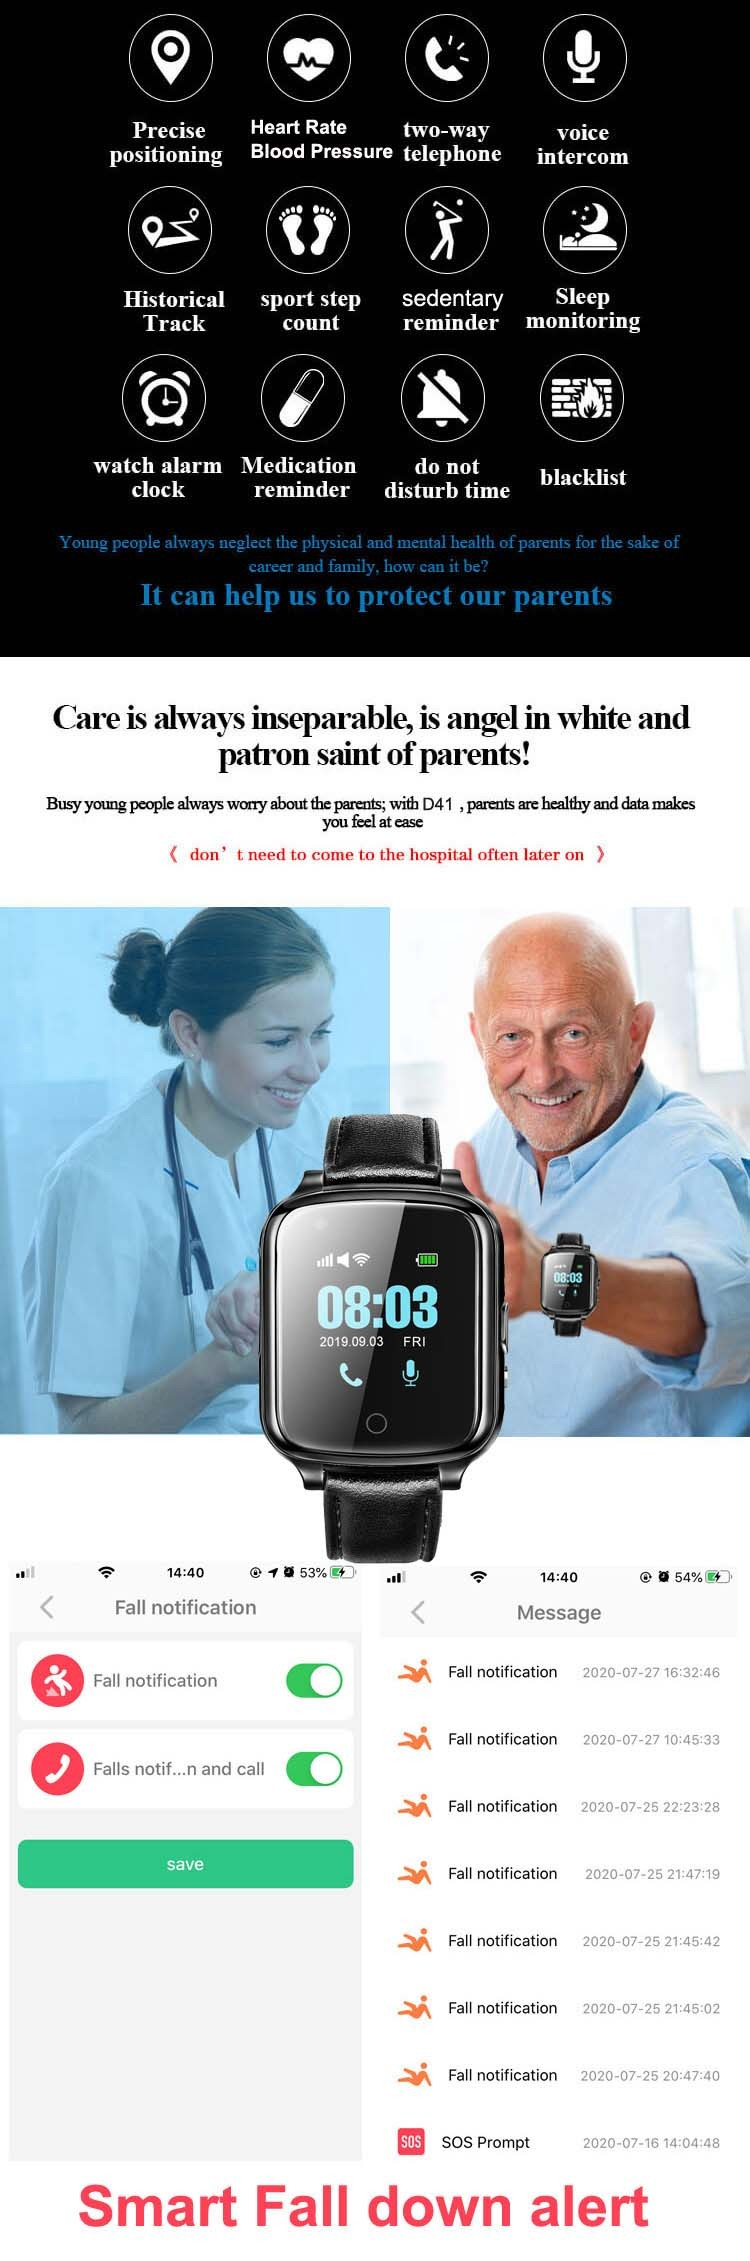 GPS057W – OMG Elderly Health Monitoring GPS Tracker Watch with Blood Pressure Heart Rate Monitoring, Fall Detection, Medication Reminder - All Features